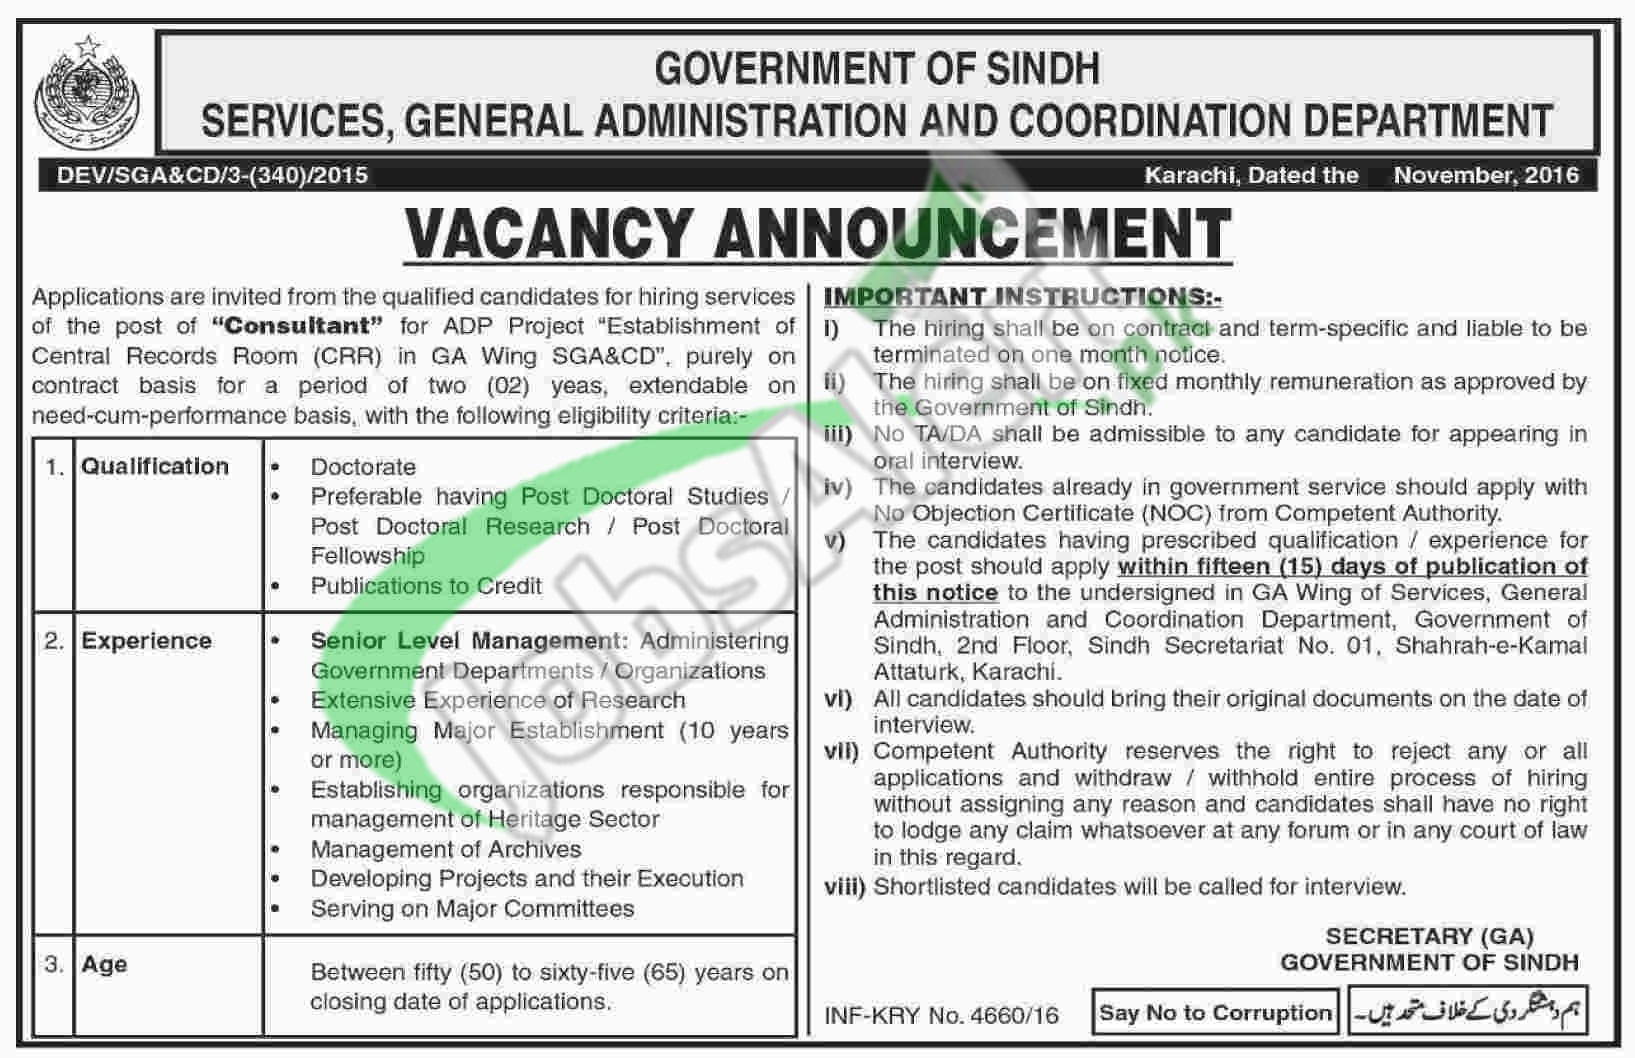 Services General Administration Coordination Department Sindh Jobs